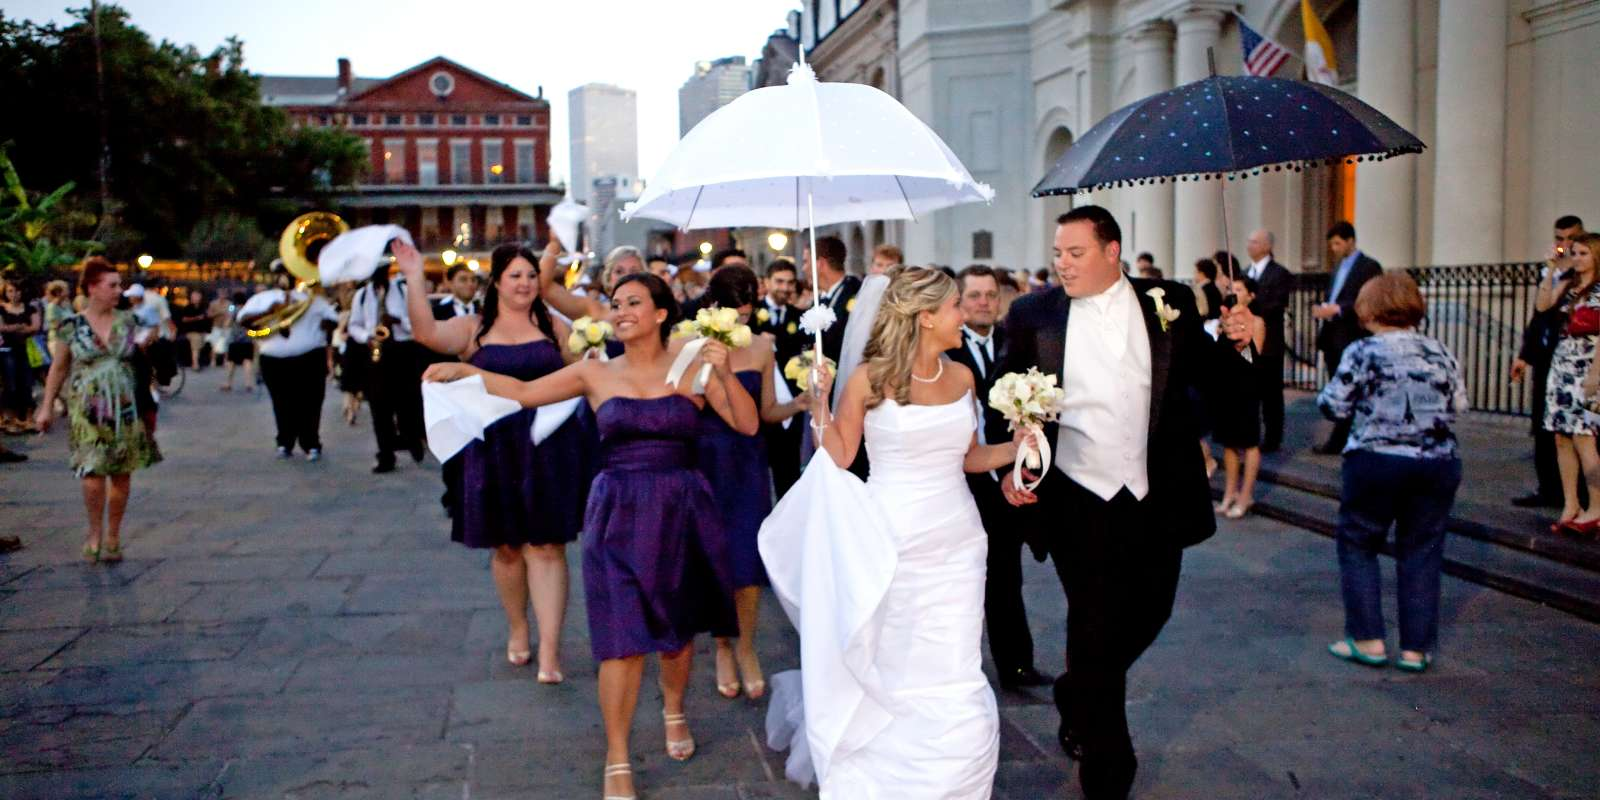 Jackson Square wedding second line